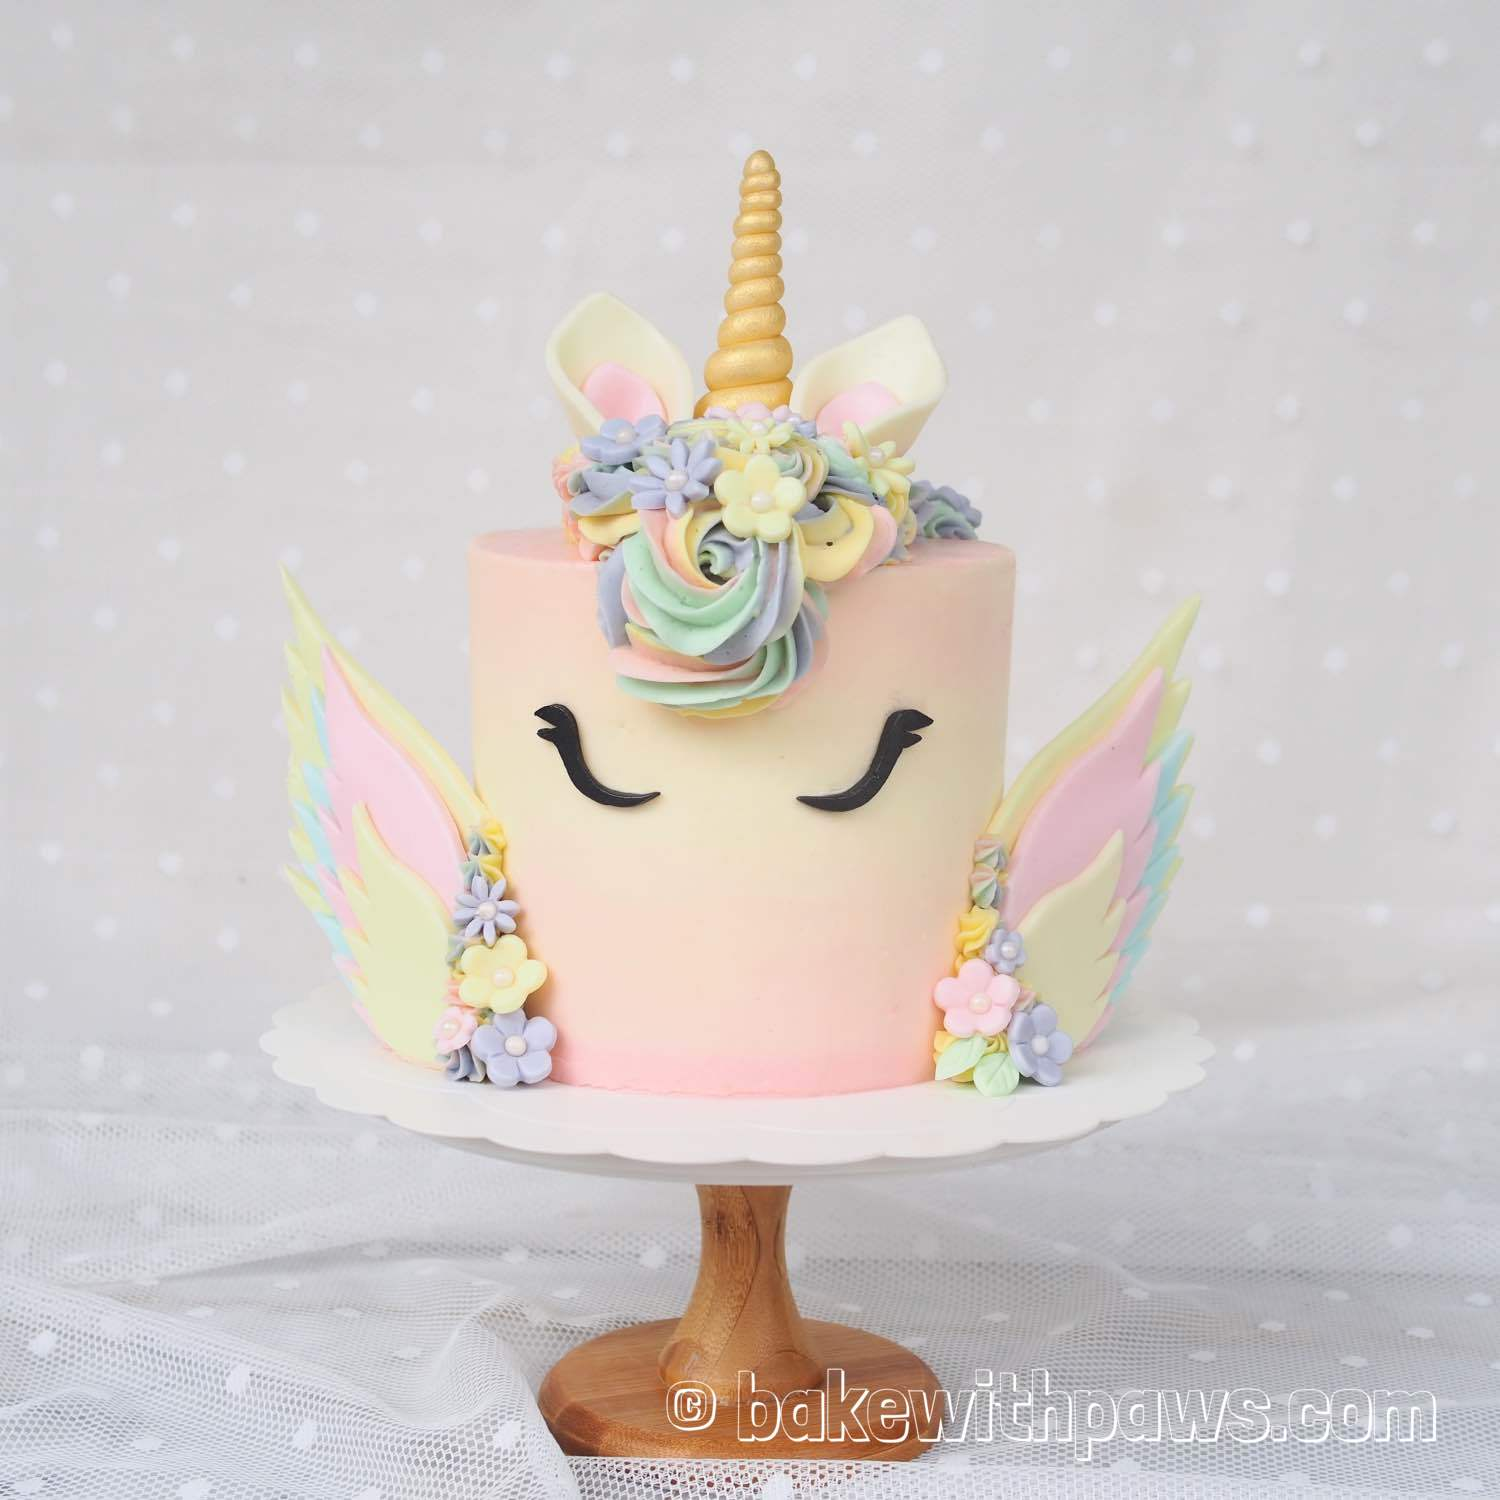 Winged Unicorn Cakes Bake With Paws